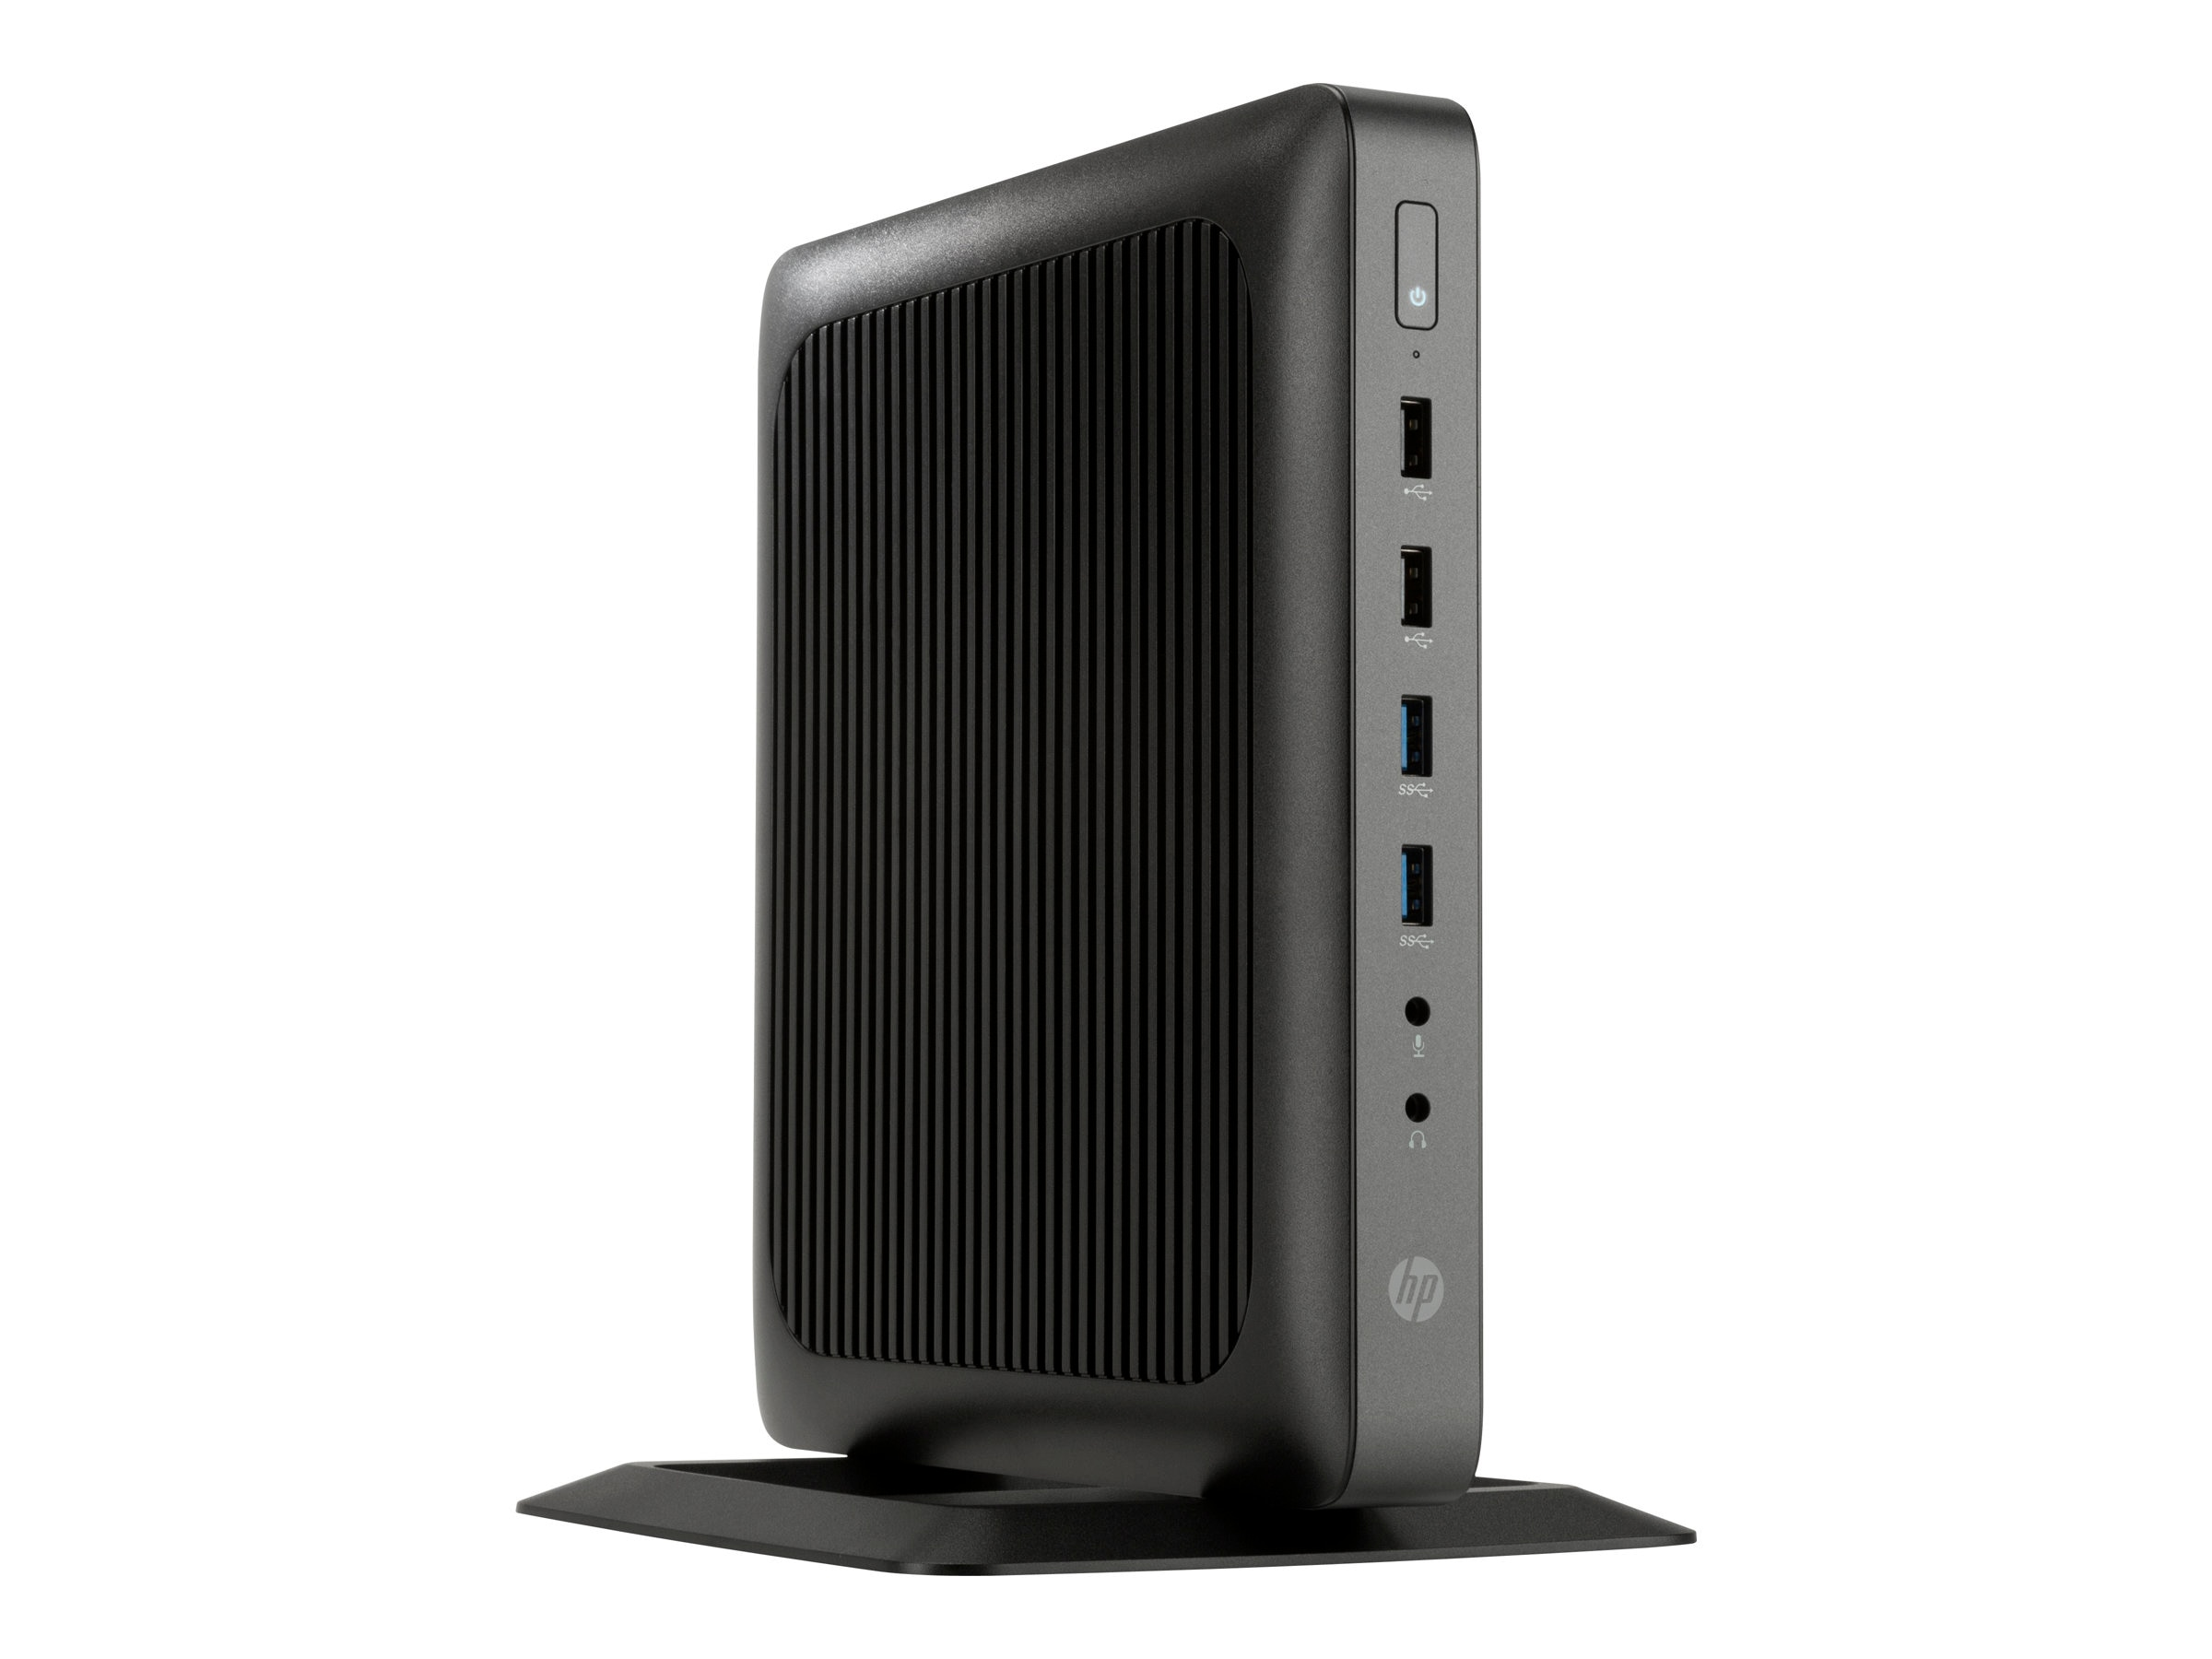 HP t620 Flexible Thin Client AMD QC GX-415GA 1.5GHz 4GB RAM 16GB Flash HD8330E GbE agn BT WES8